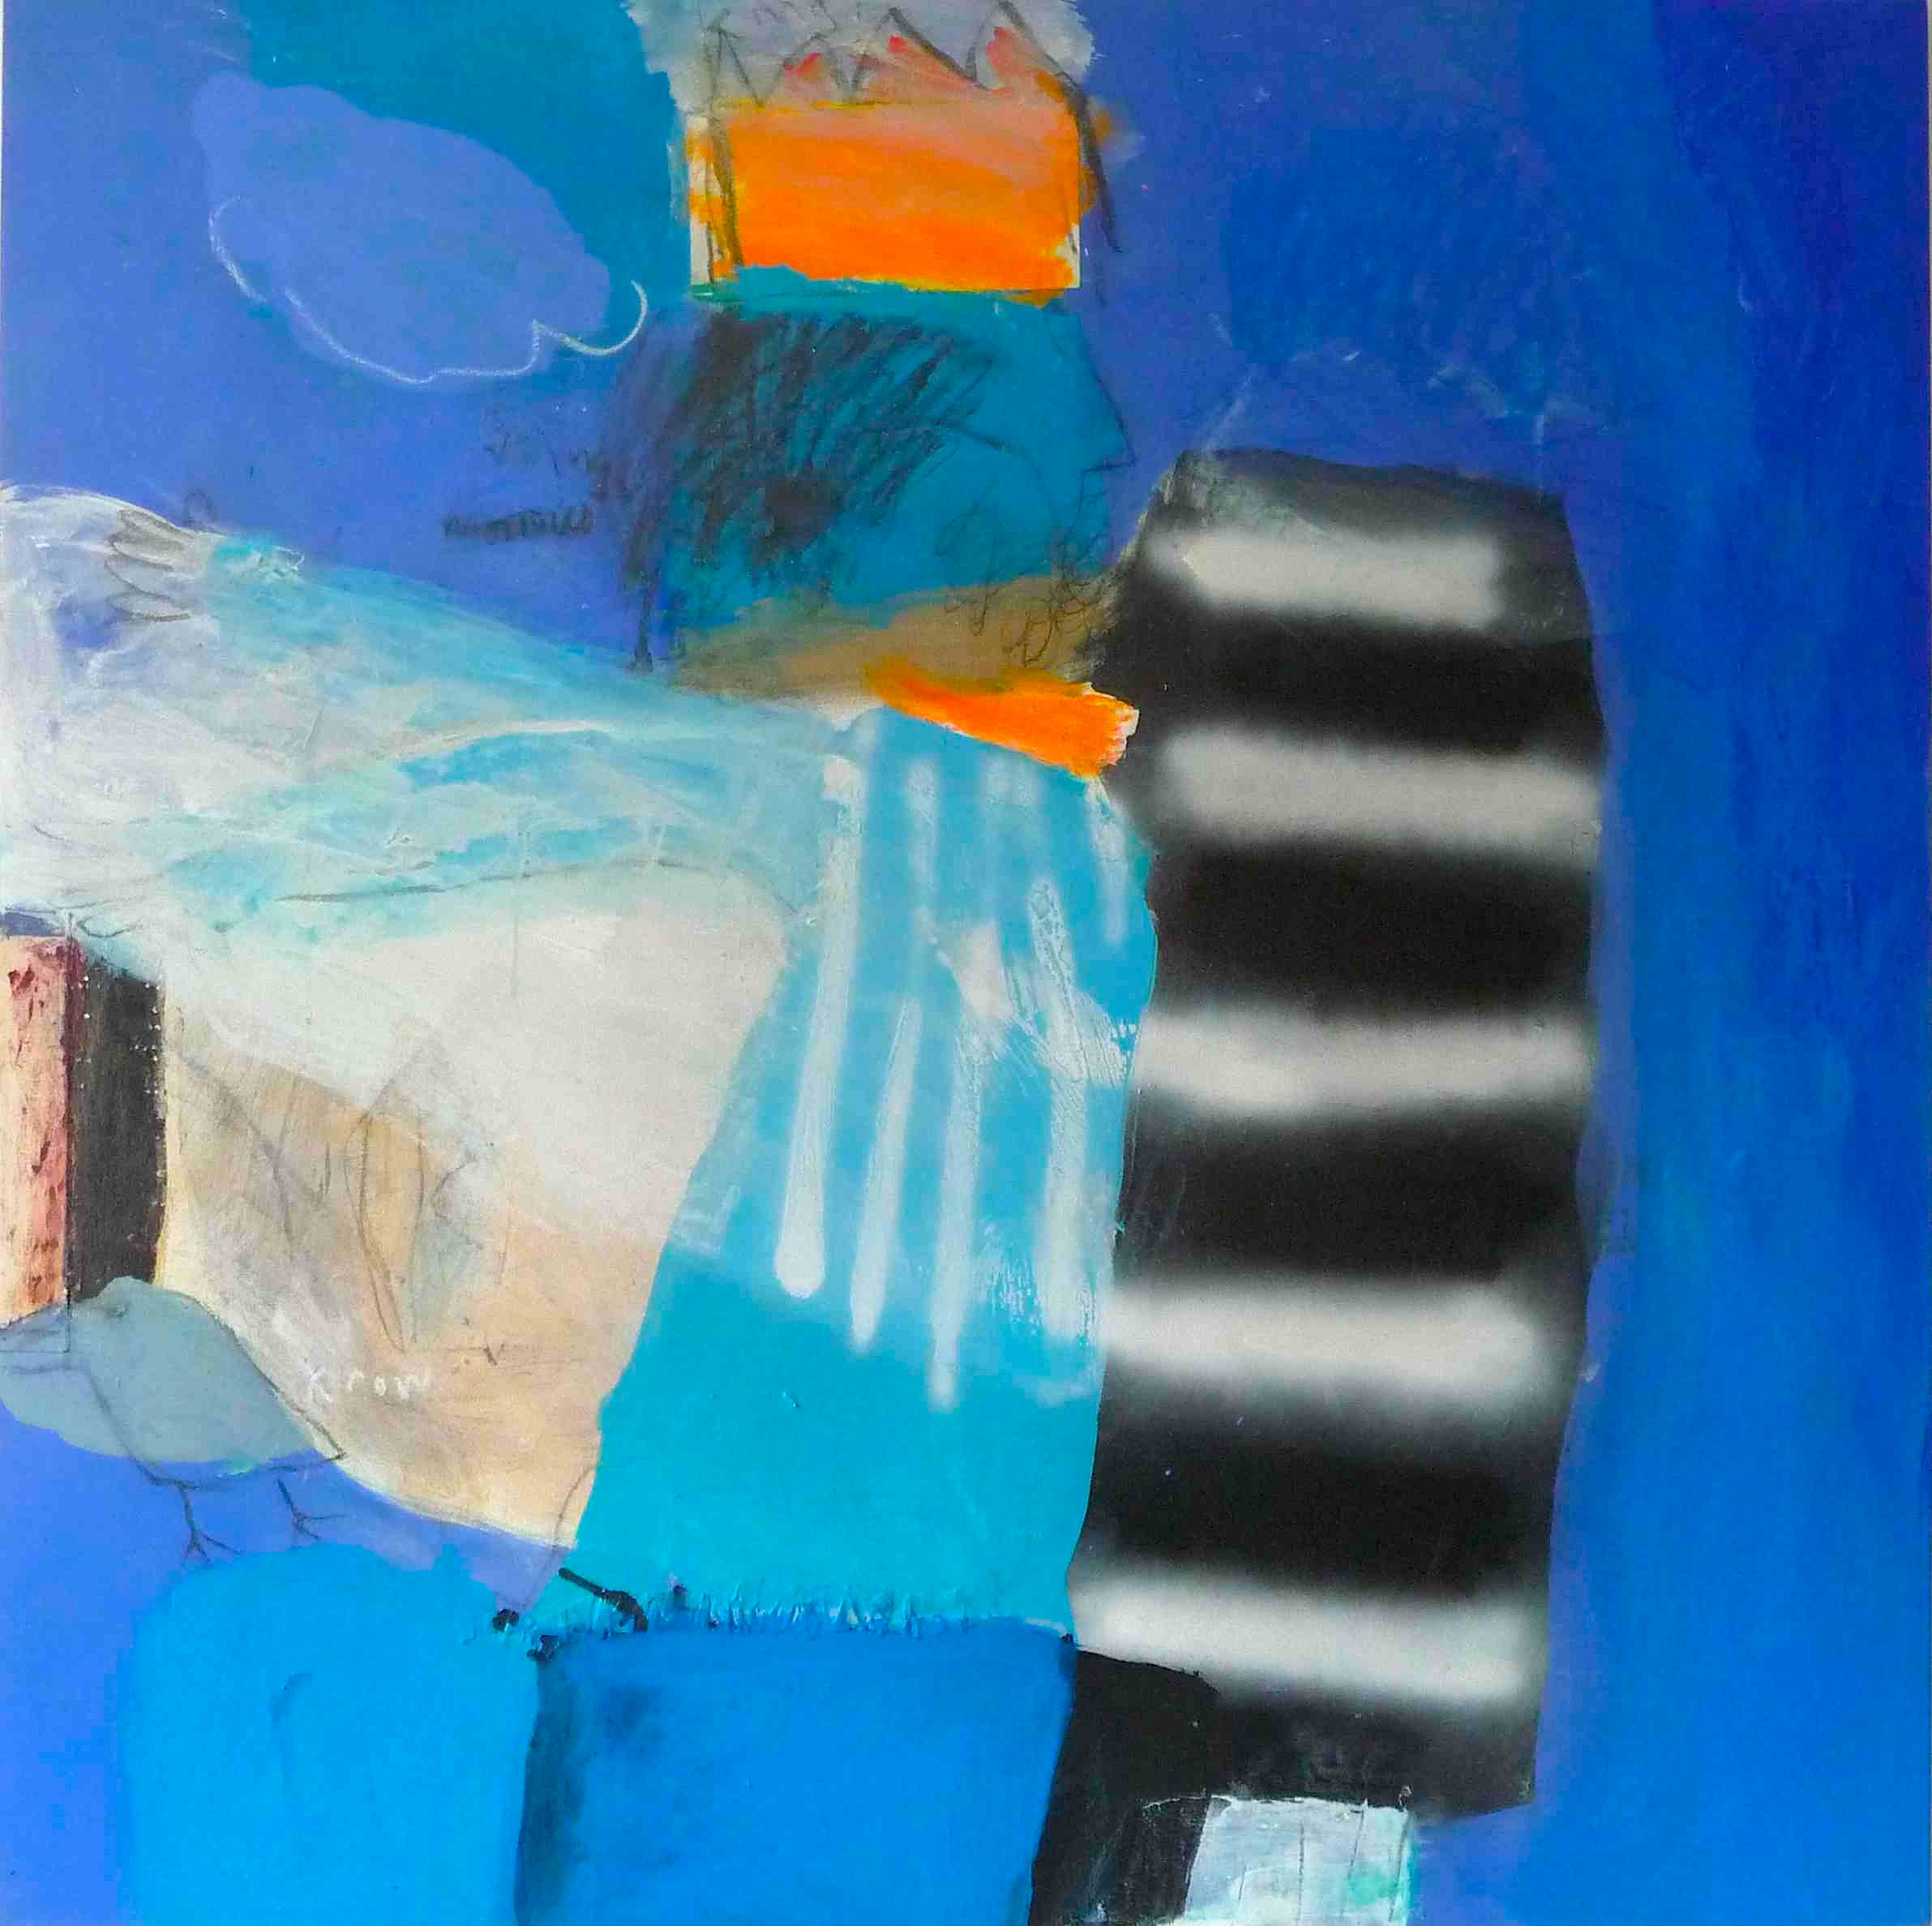 Unfinished 120 x 120cm